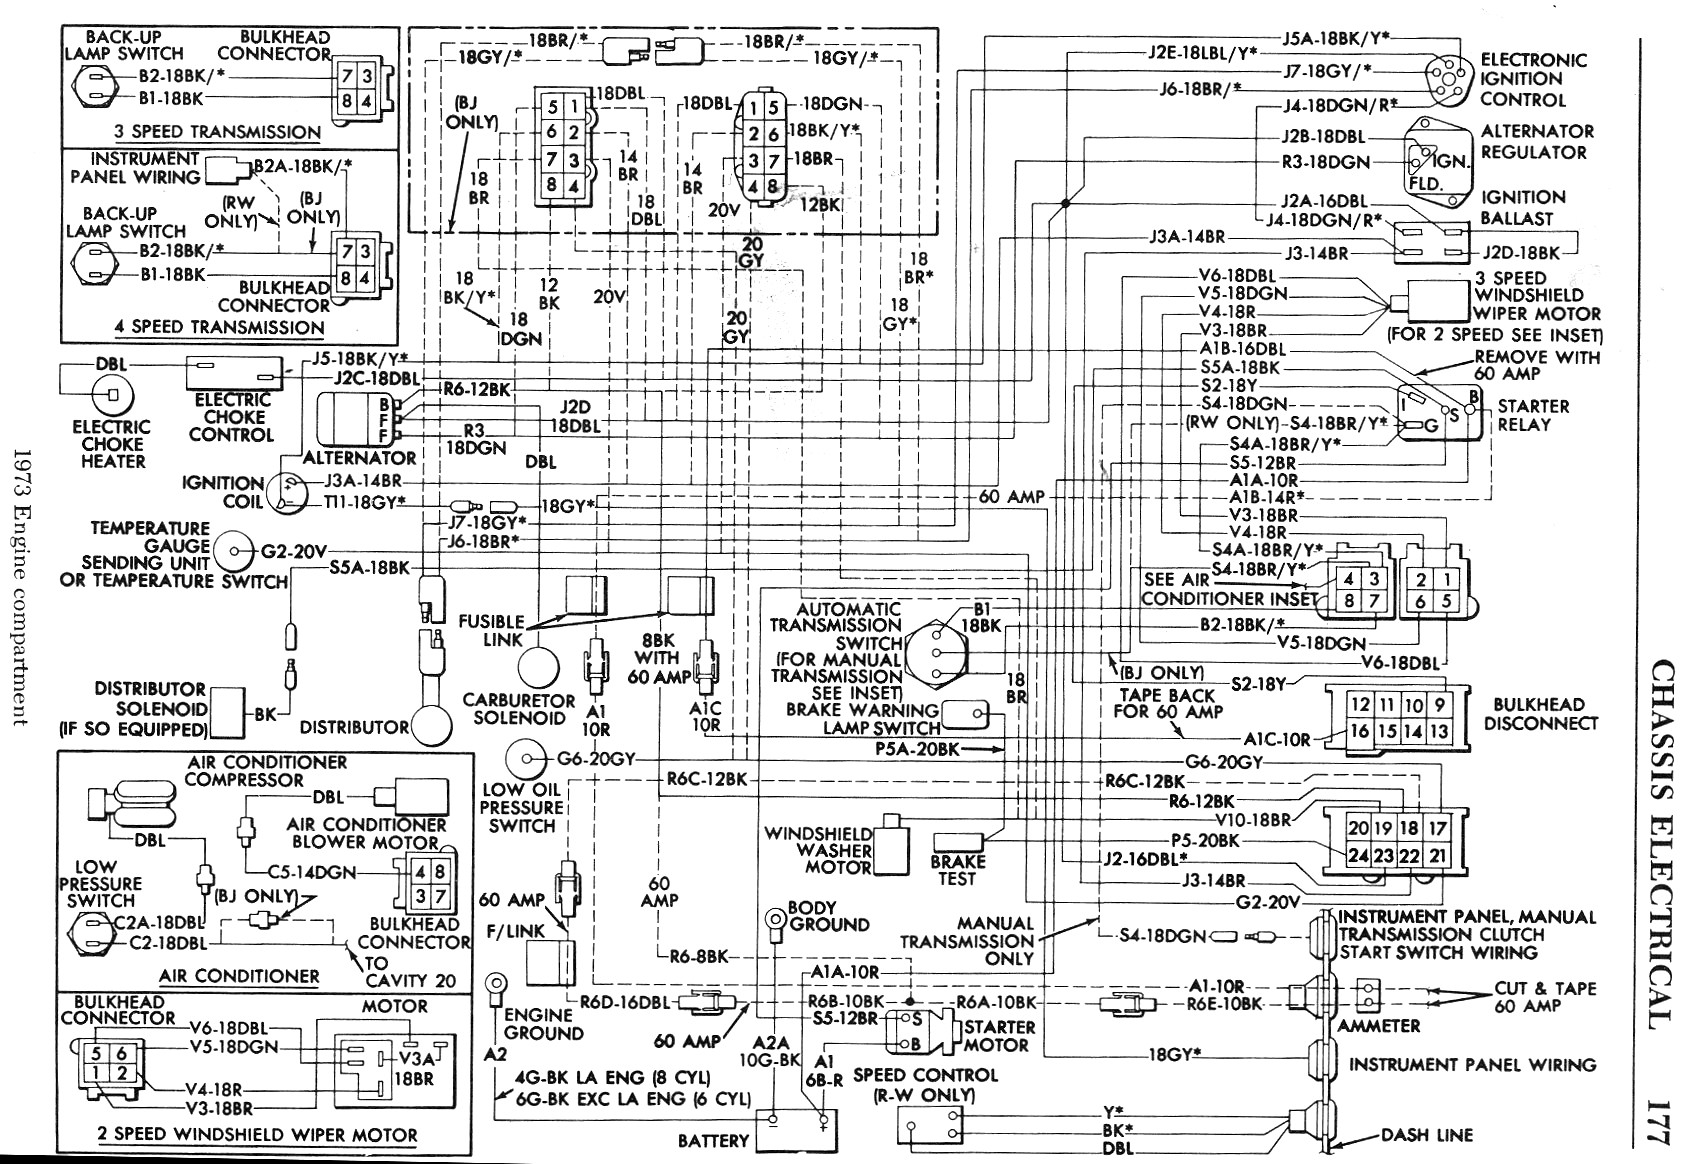 68 buick fuse diagram wiring schematic plymouth valiant scamp engine diagram dat wiring diagrams  plymouth valiant scamp engine diagram